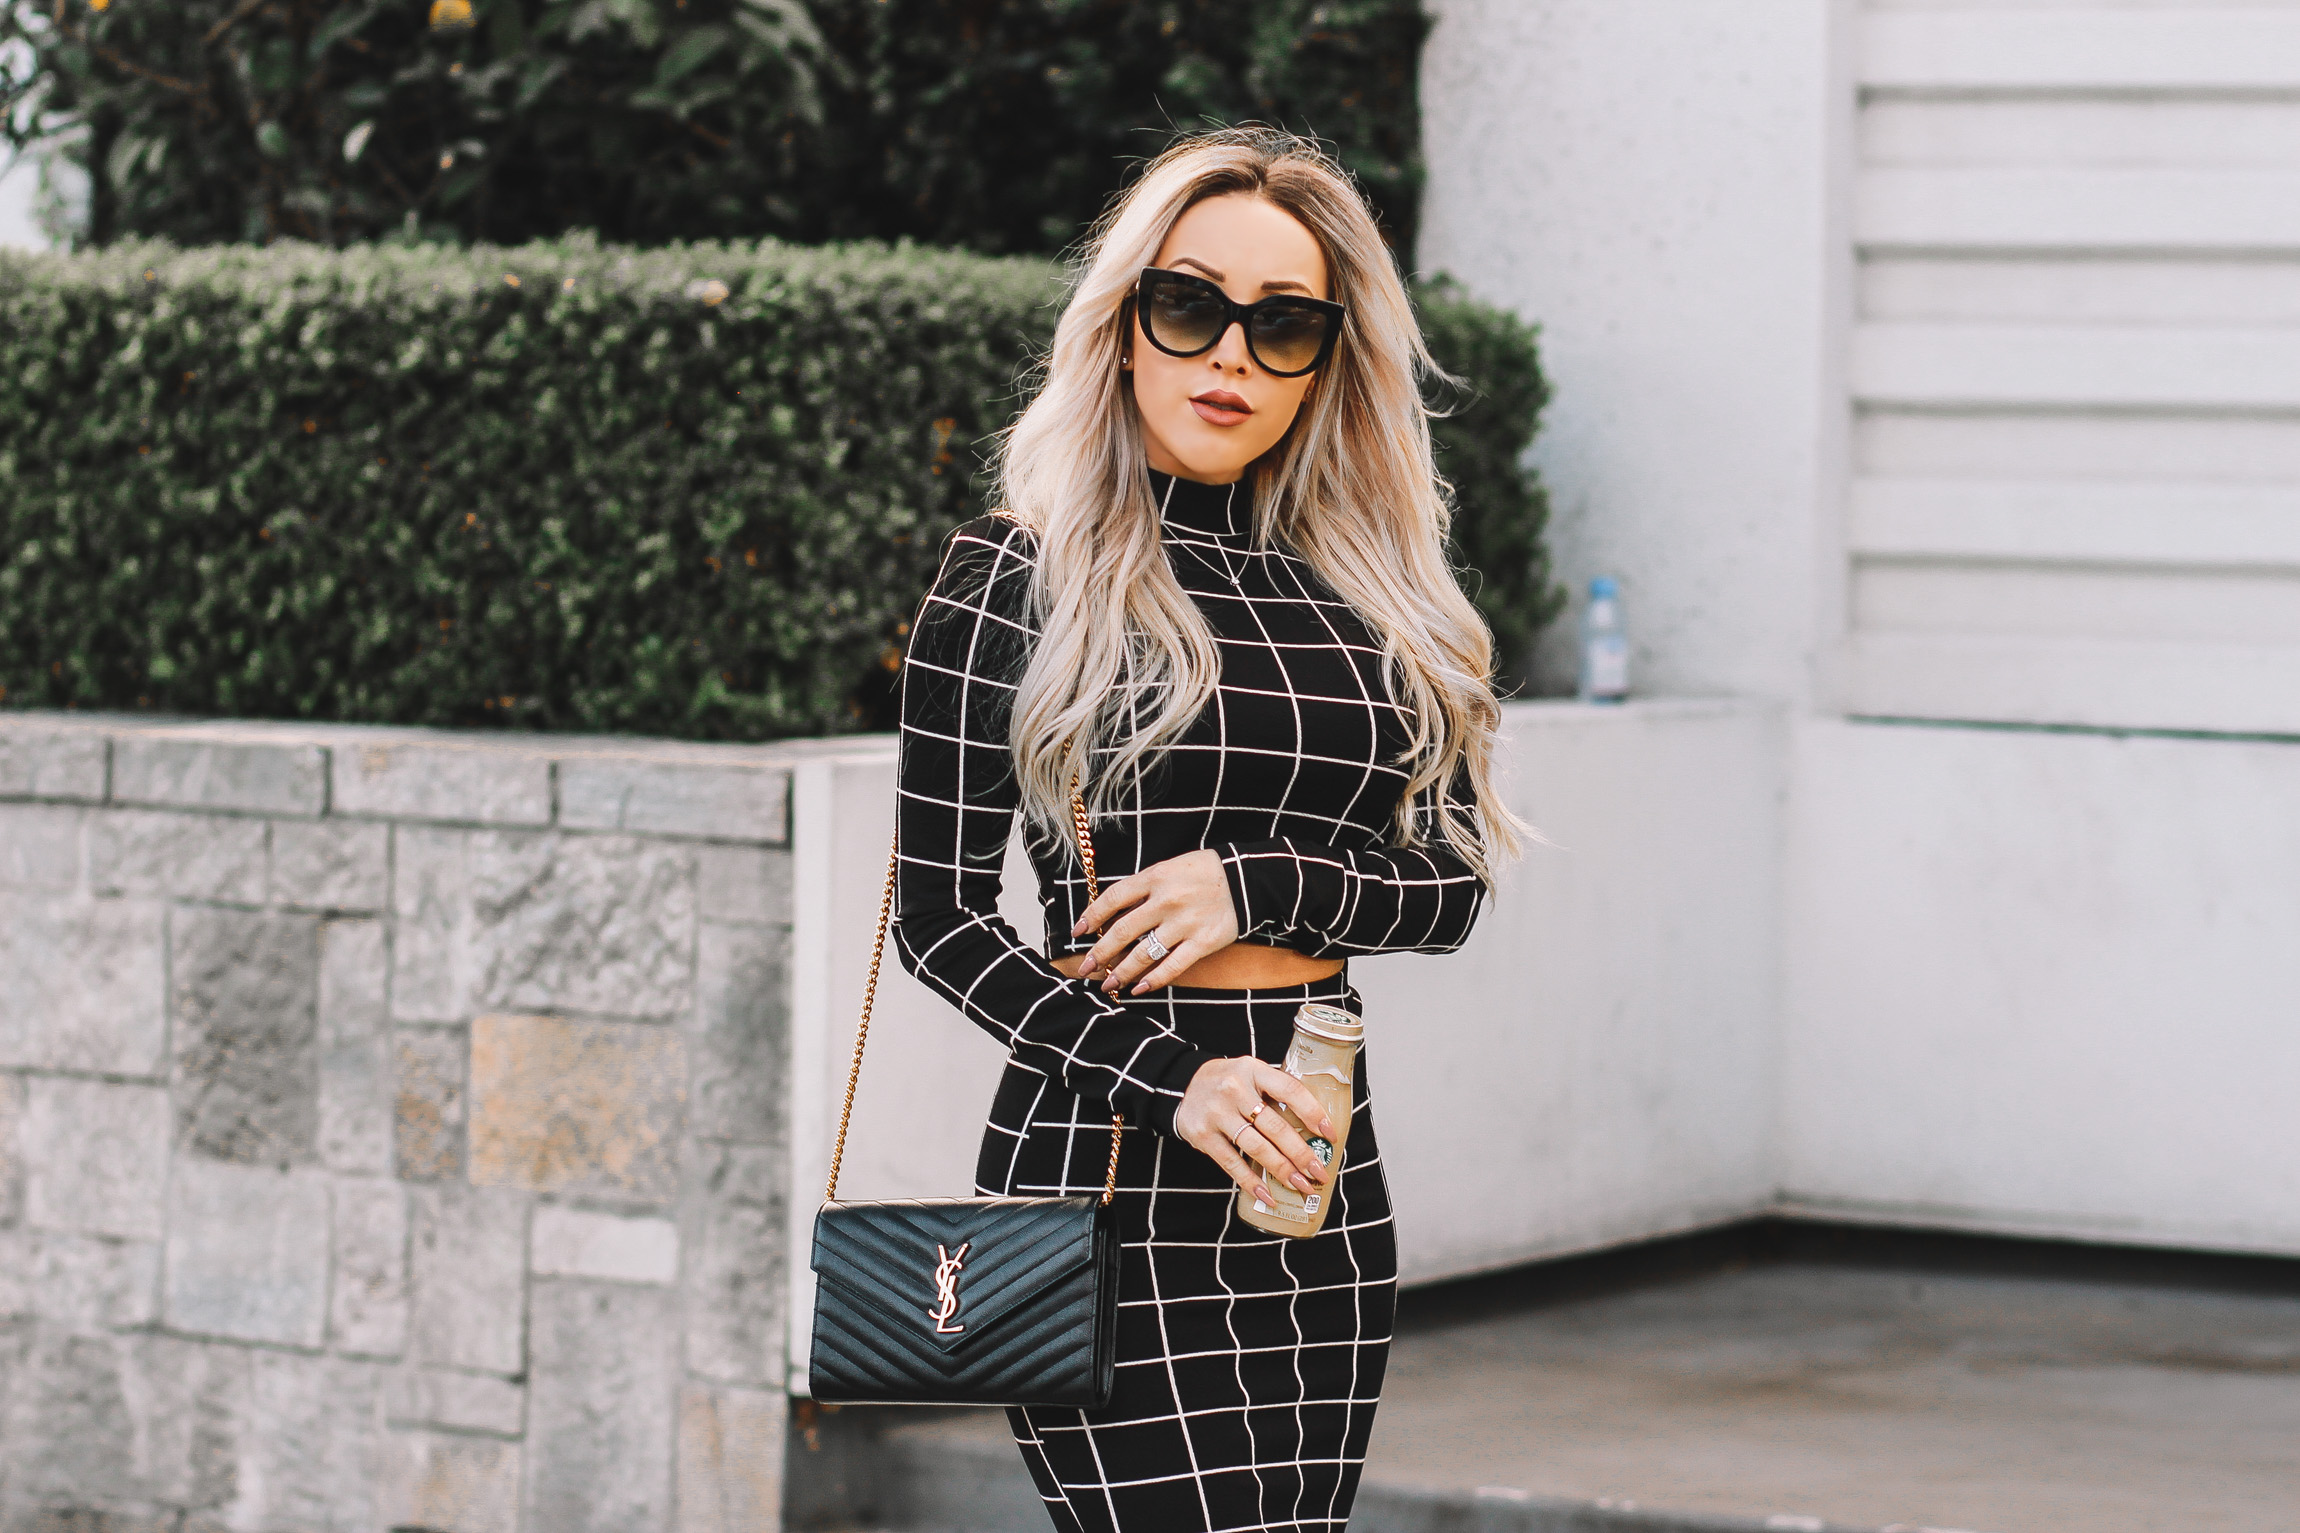 Grid Print Two Piece Business Style | Black YSL Bag | Nude Louboutins | Blondie in the City by Hayley Larue